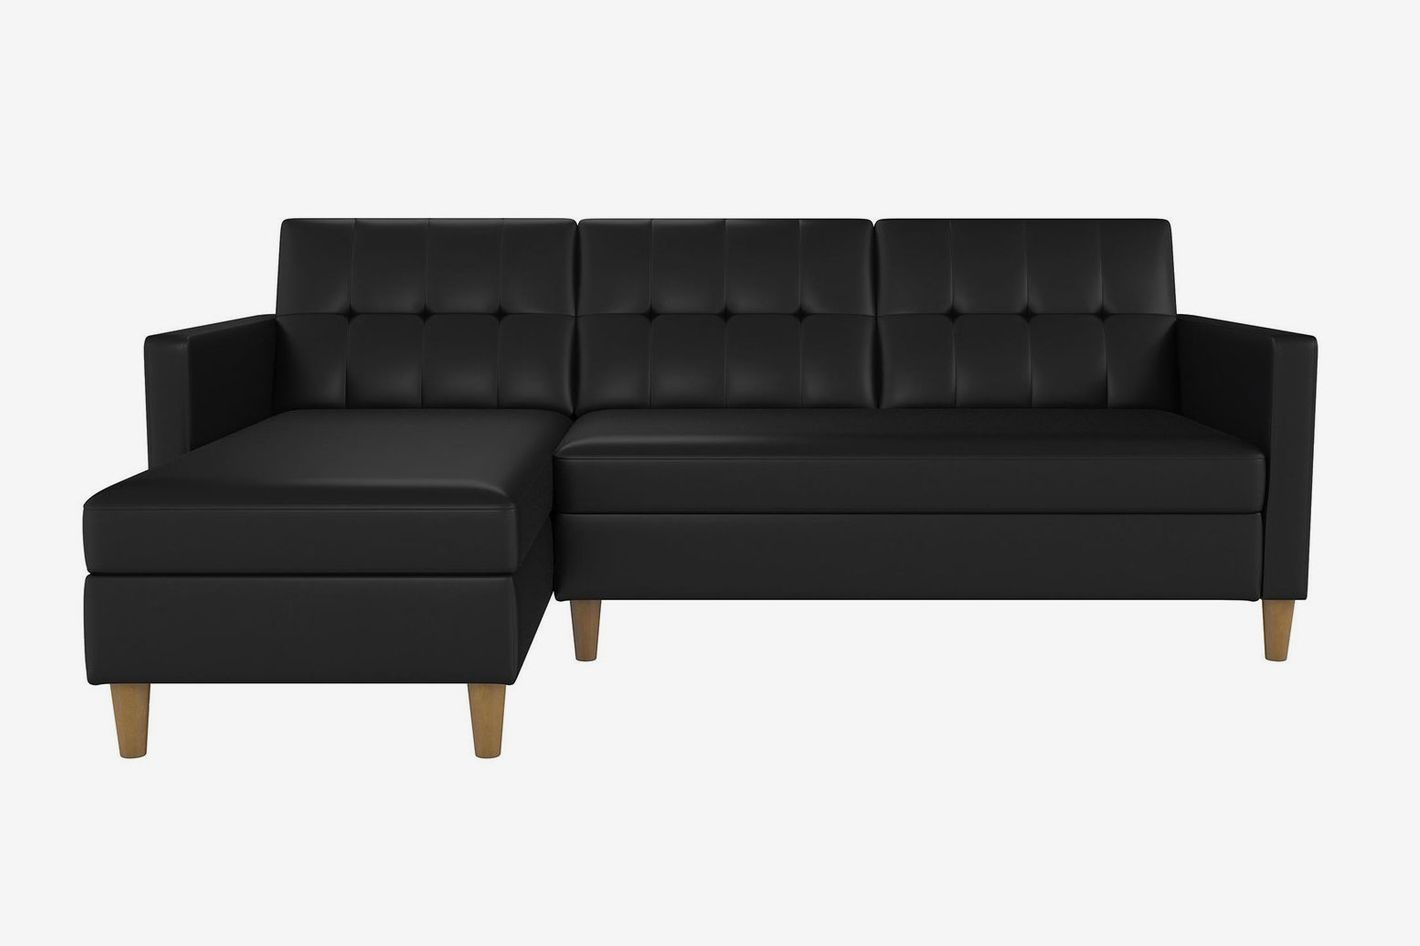 A Couch Bed Stigall Reversible Sleeper Sectional